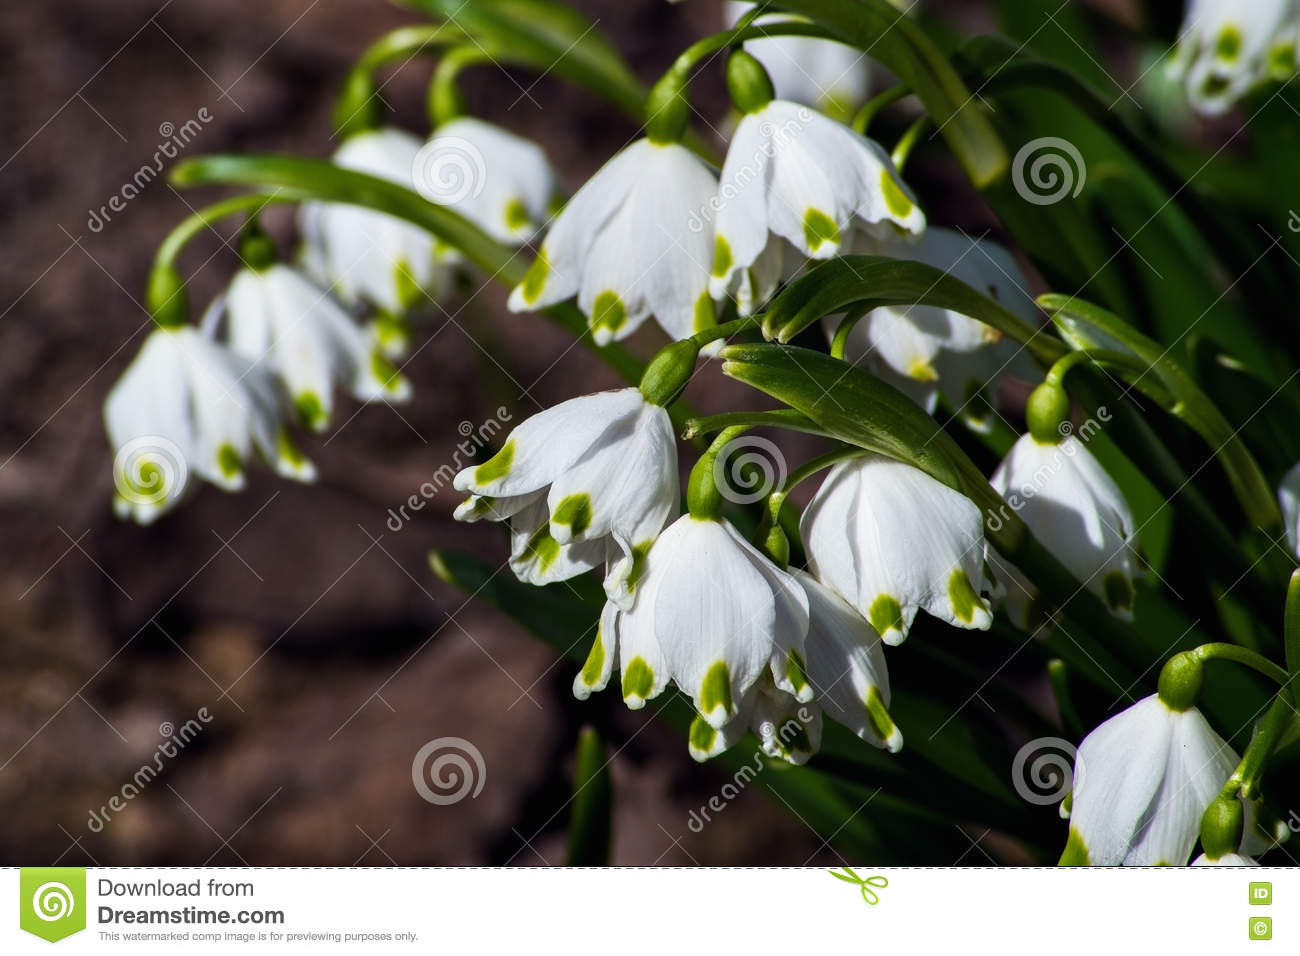 Snowdrops Are The First Spring Flowers That Bloom Early Spring Stock